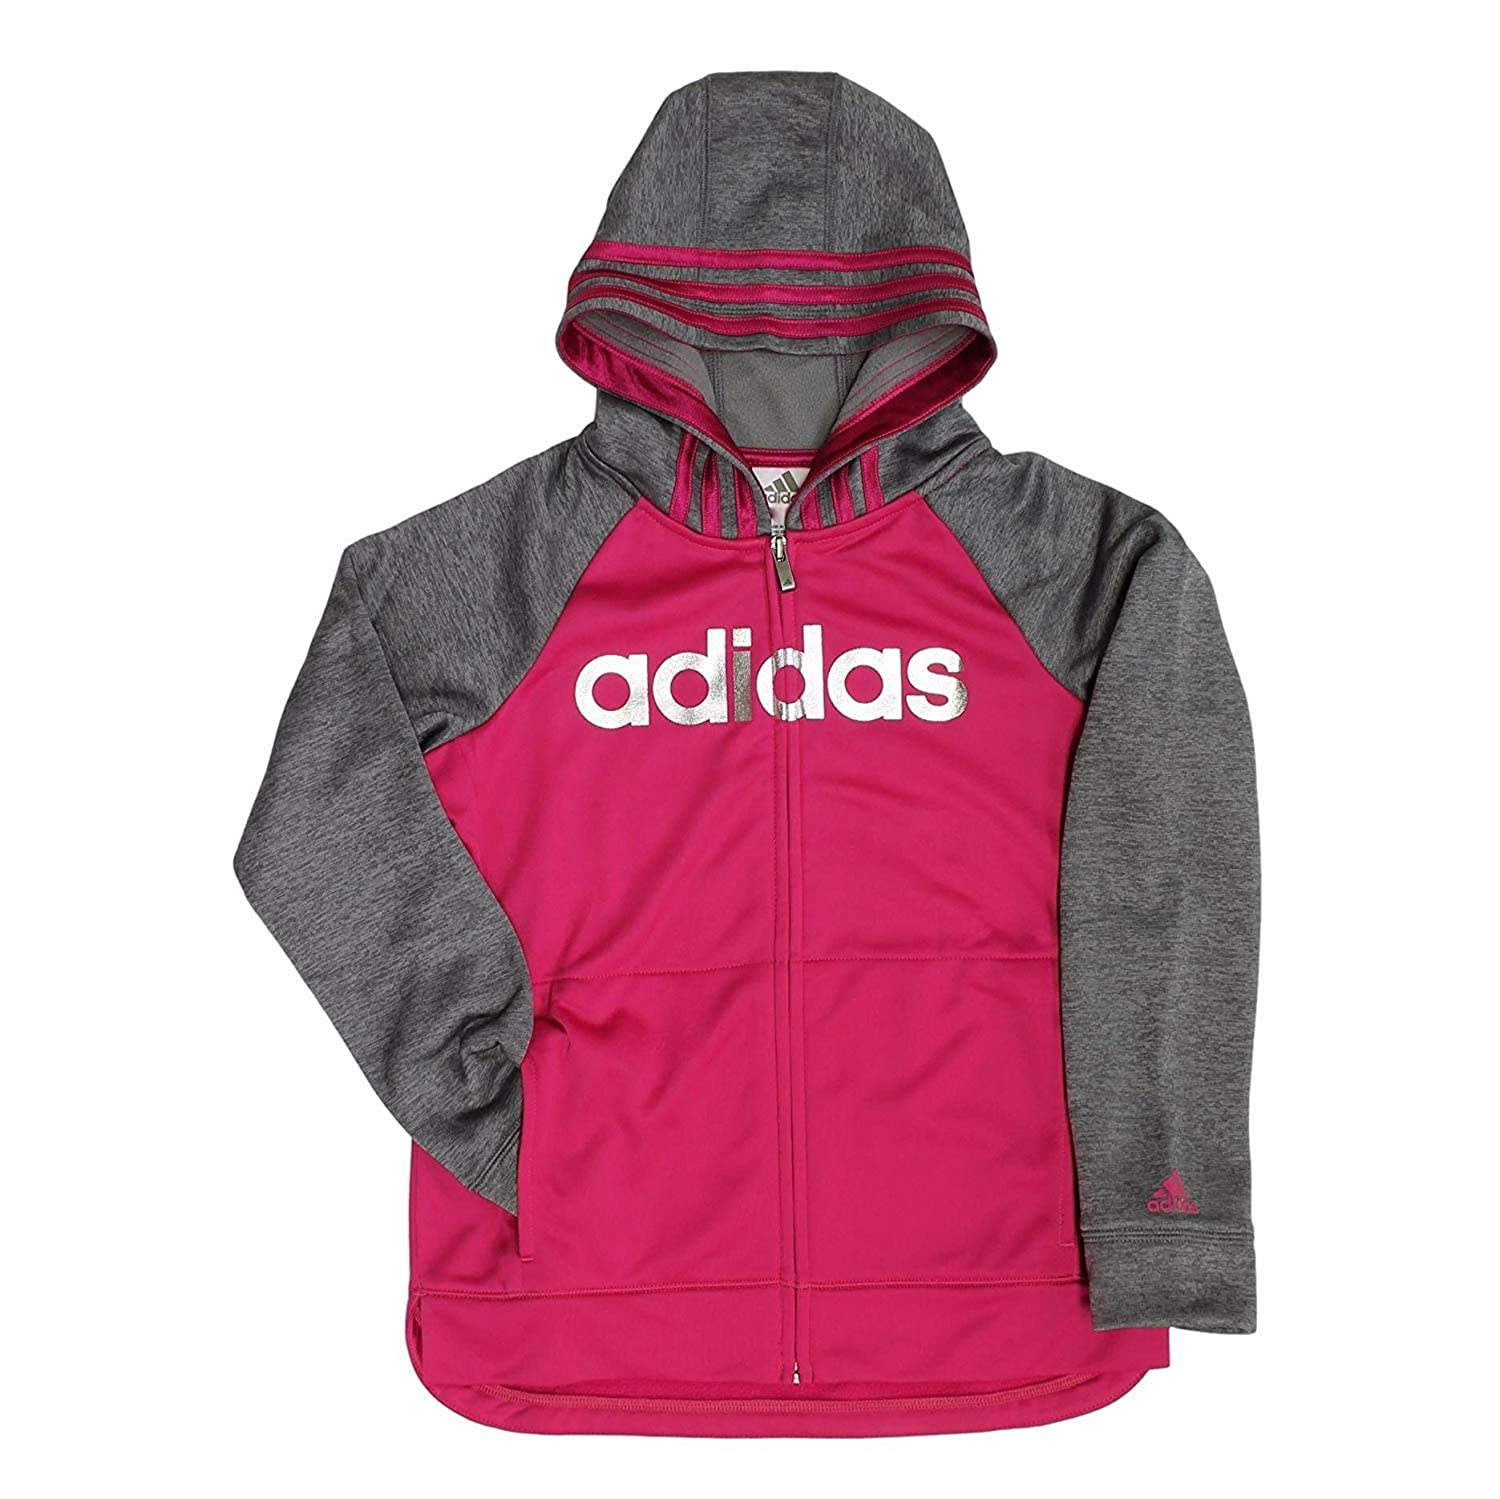 Adidas Active Full Zip Hoodie Girls S(7/8))